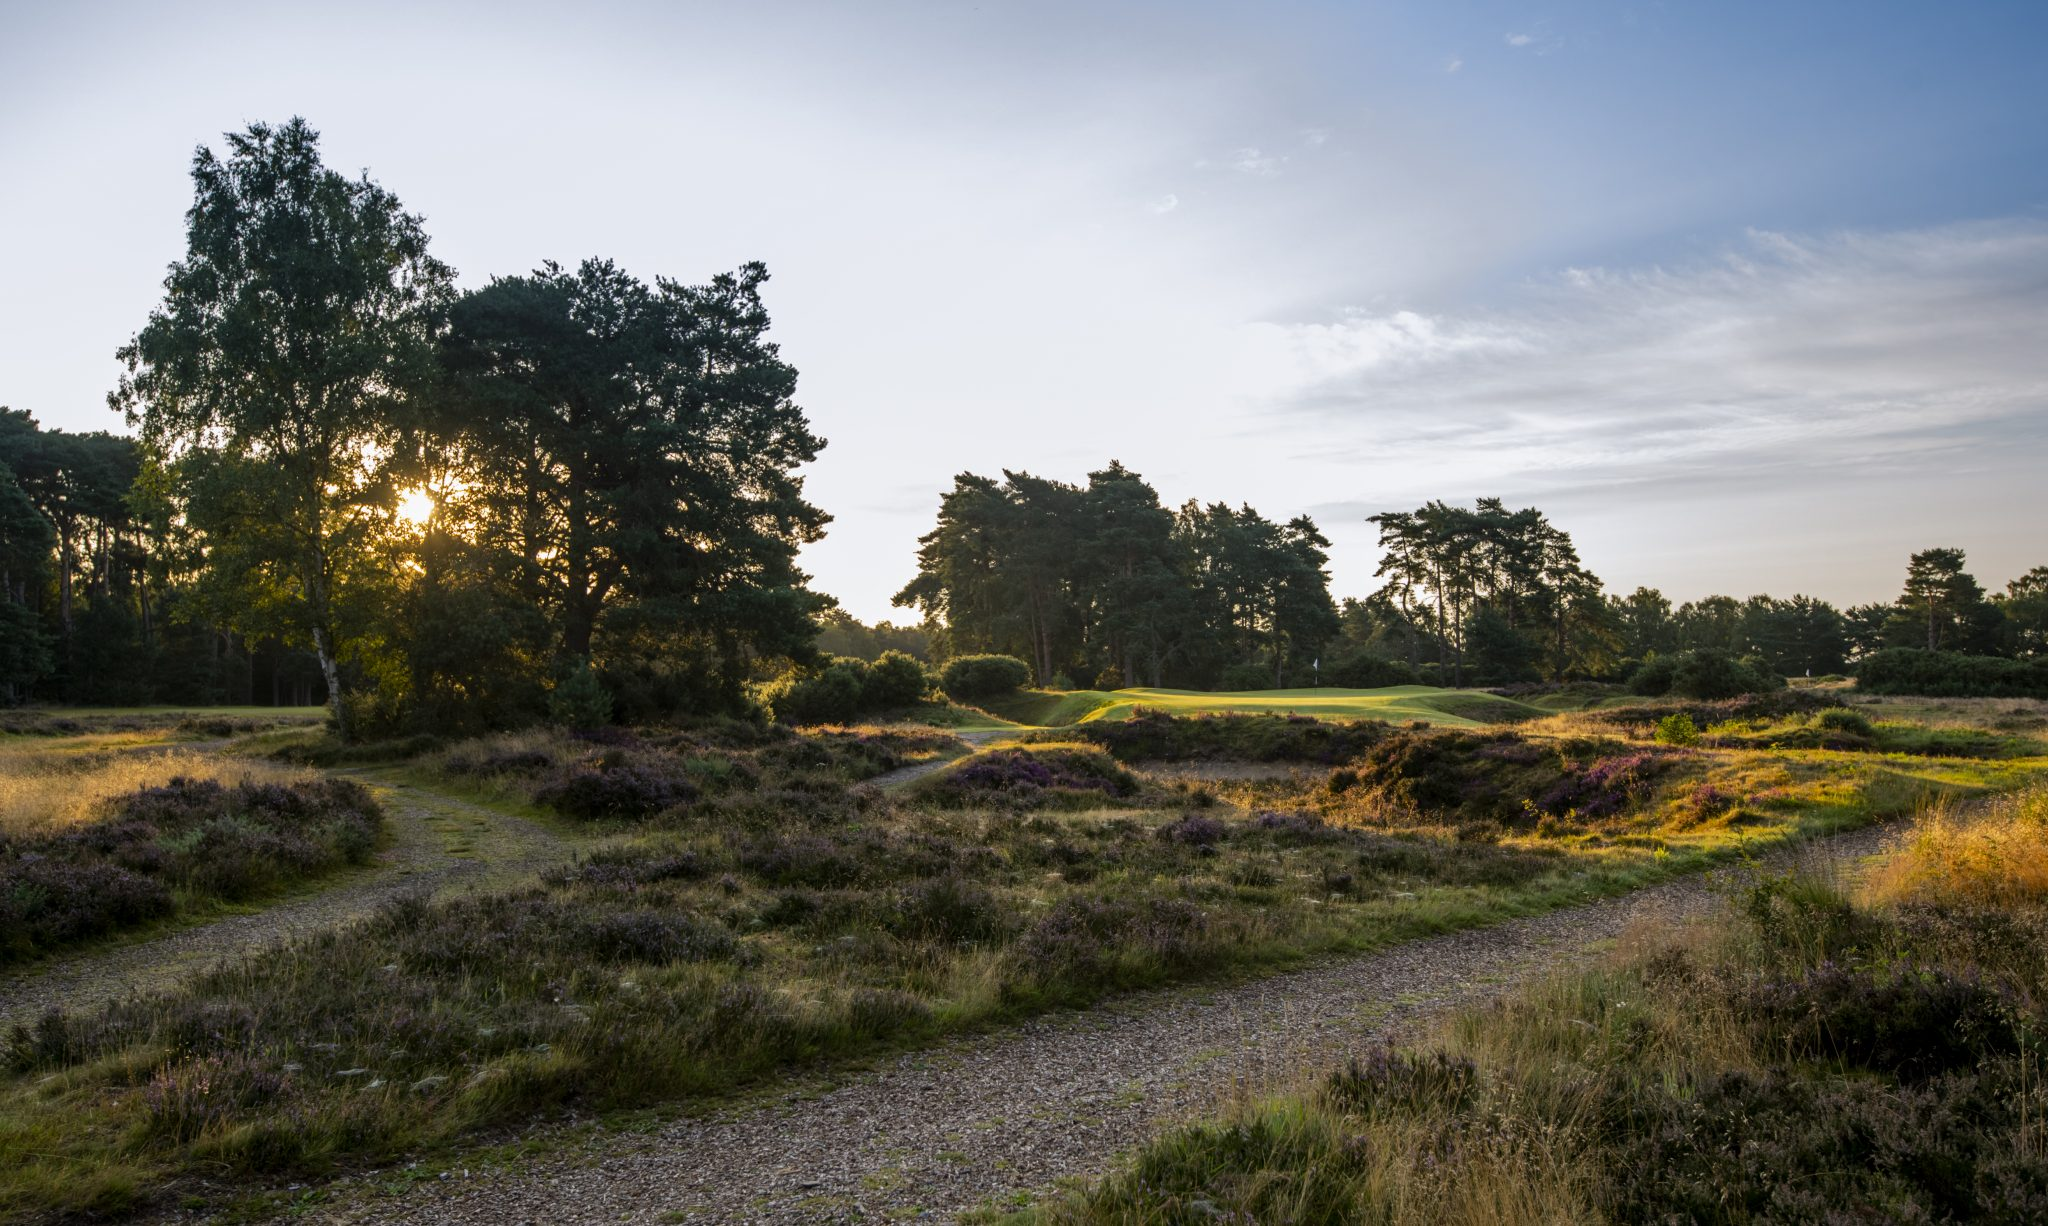 England Golf signs letter to Prime Minister urging a rethink on course closures